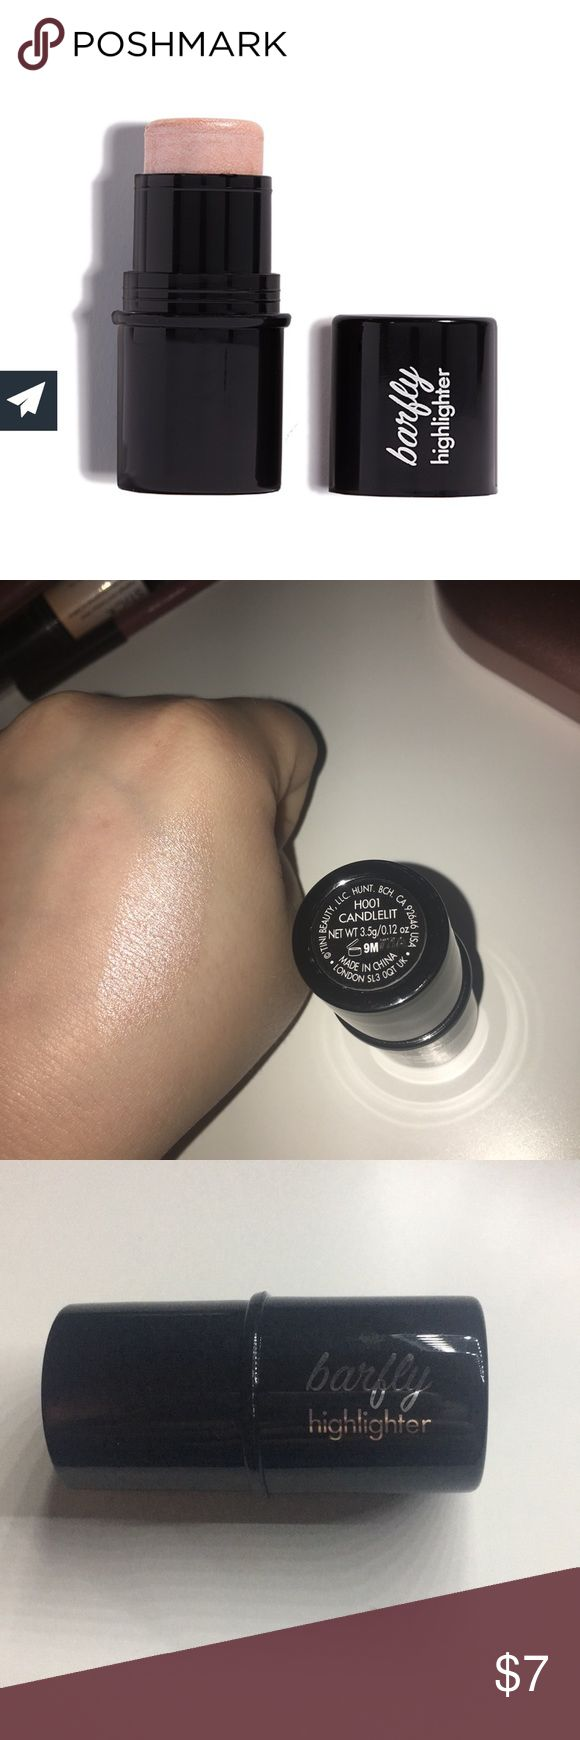 Candlelit Barfly Highlighter Brand new. Only swatched for picture. Beautiful pink shimmery color. Barfly Makeup Luminizer